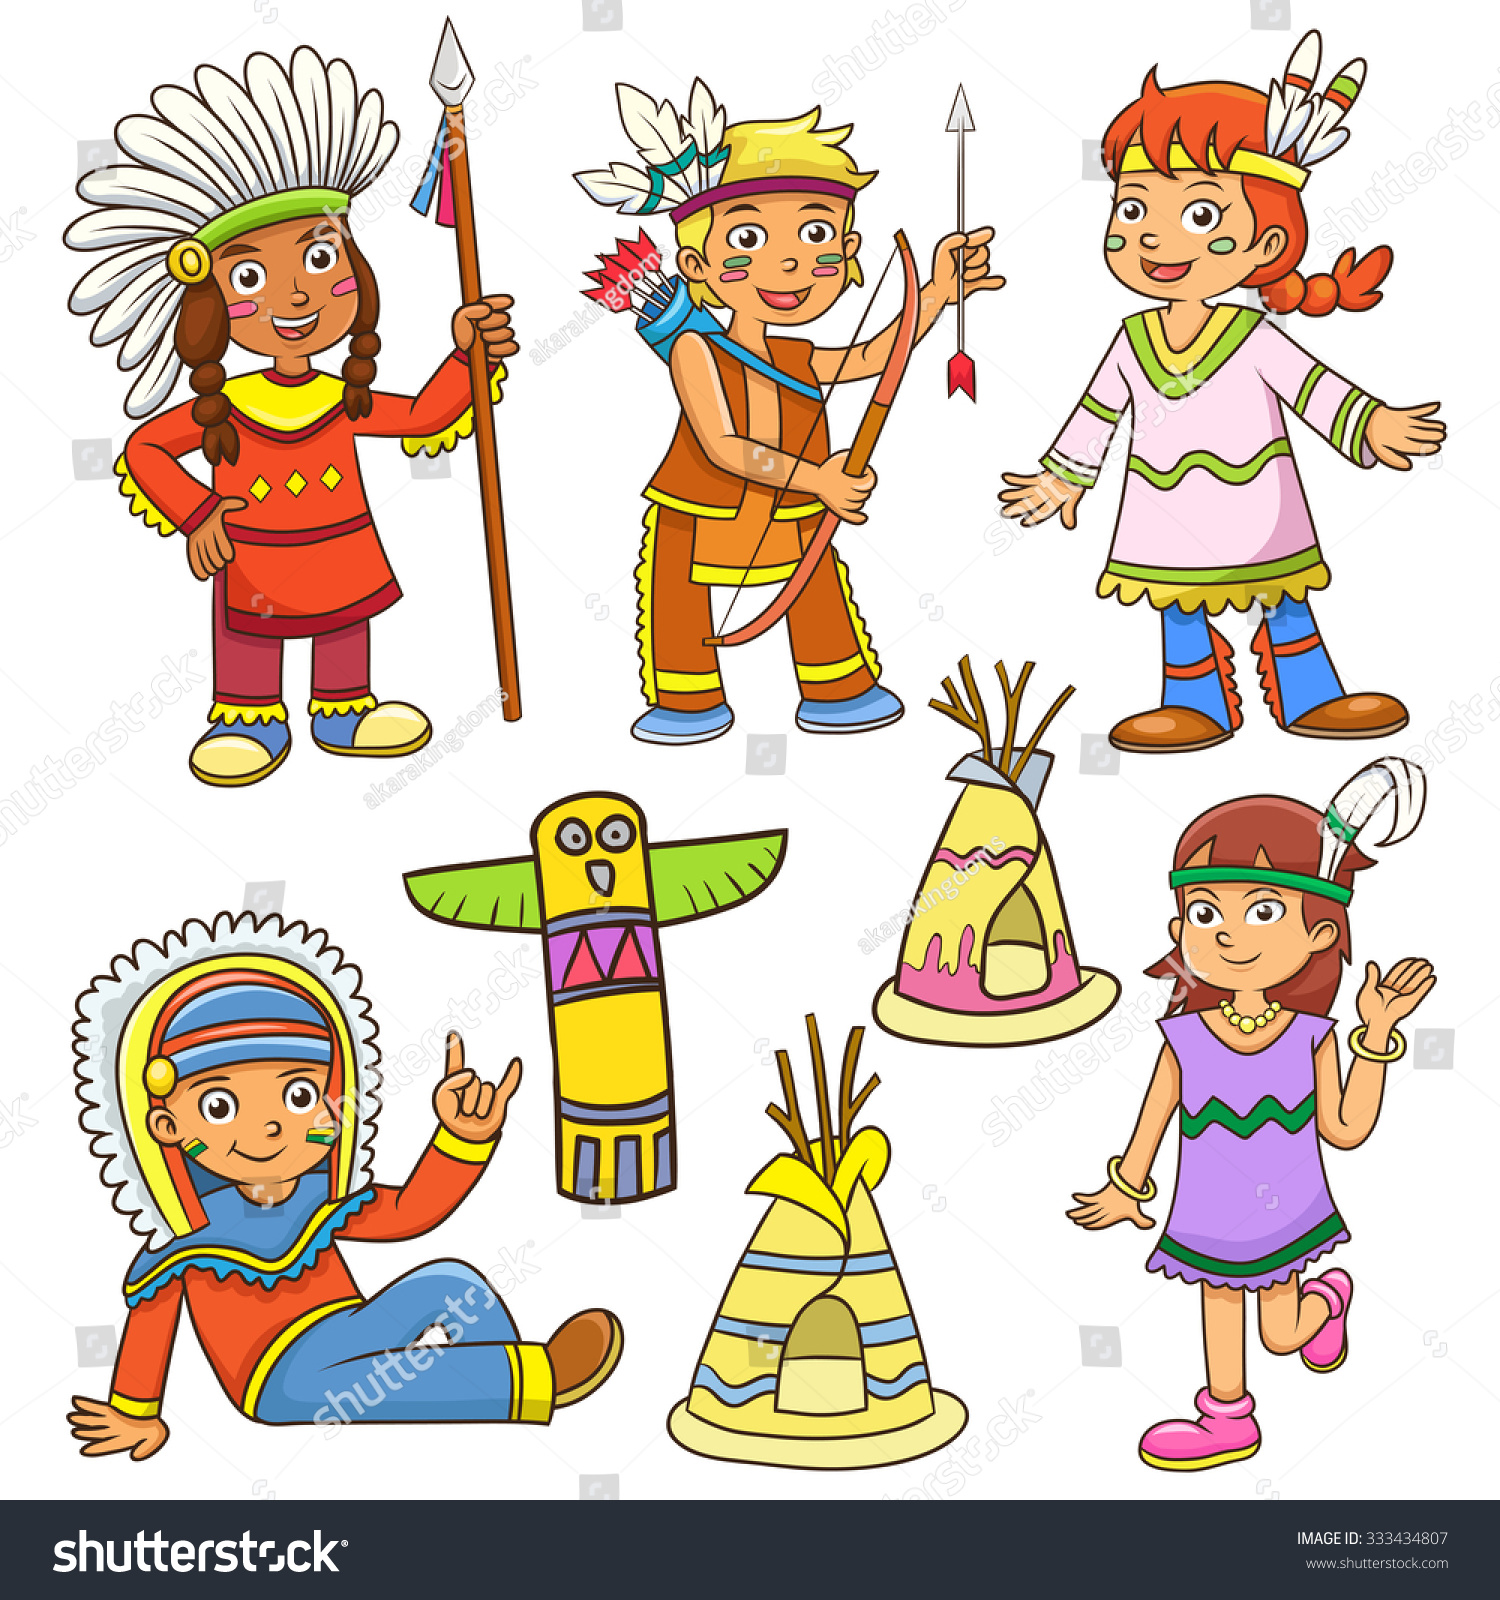 Illustration Red Indian Cartooneps10 File Simple Stock Vector ...